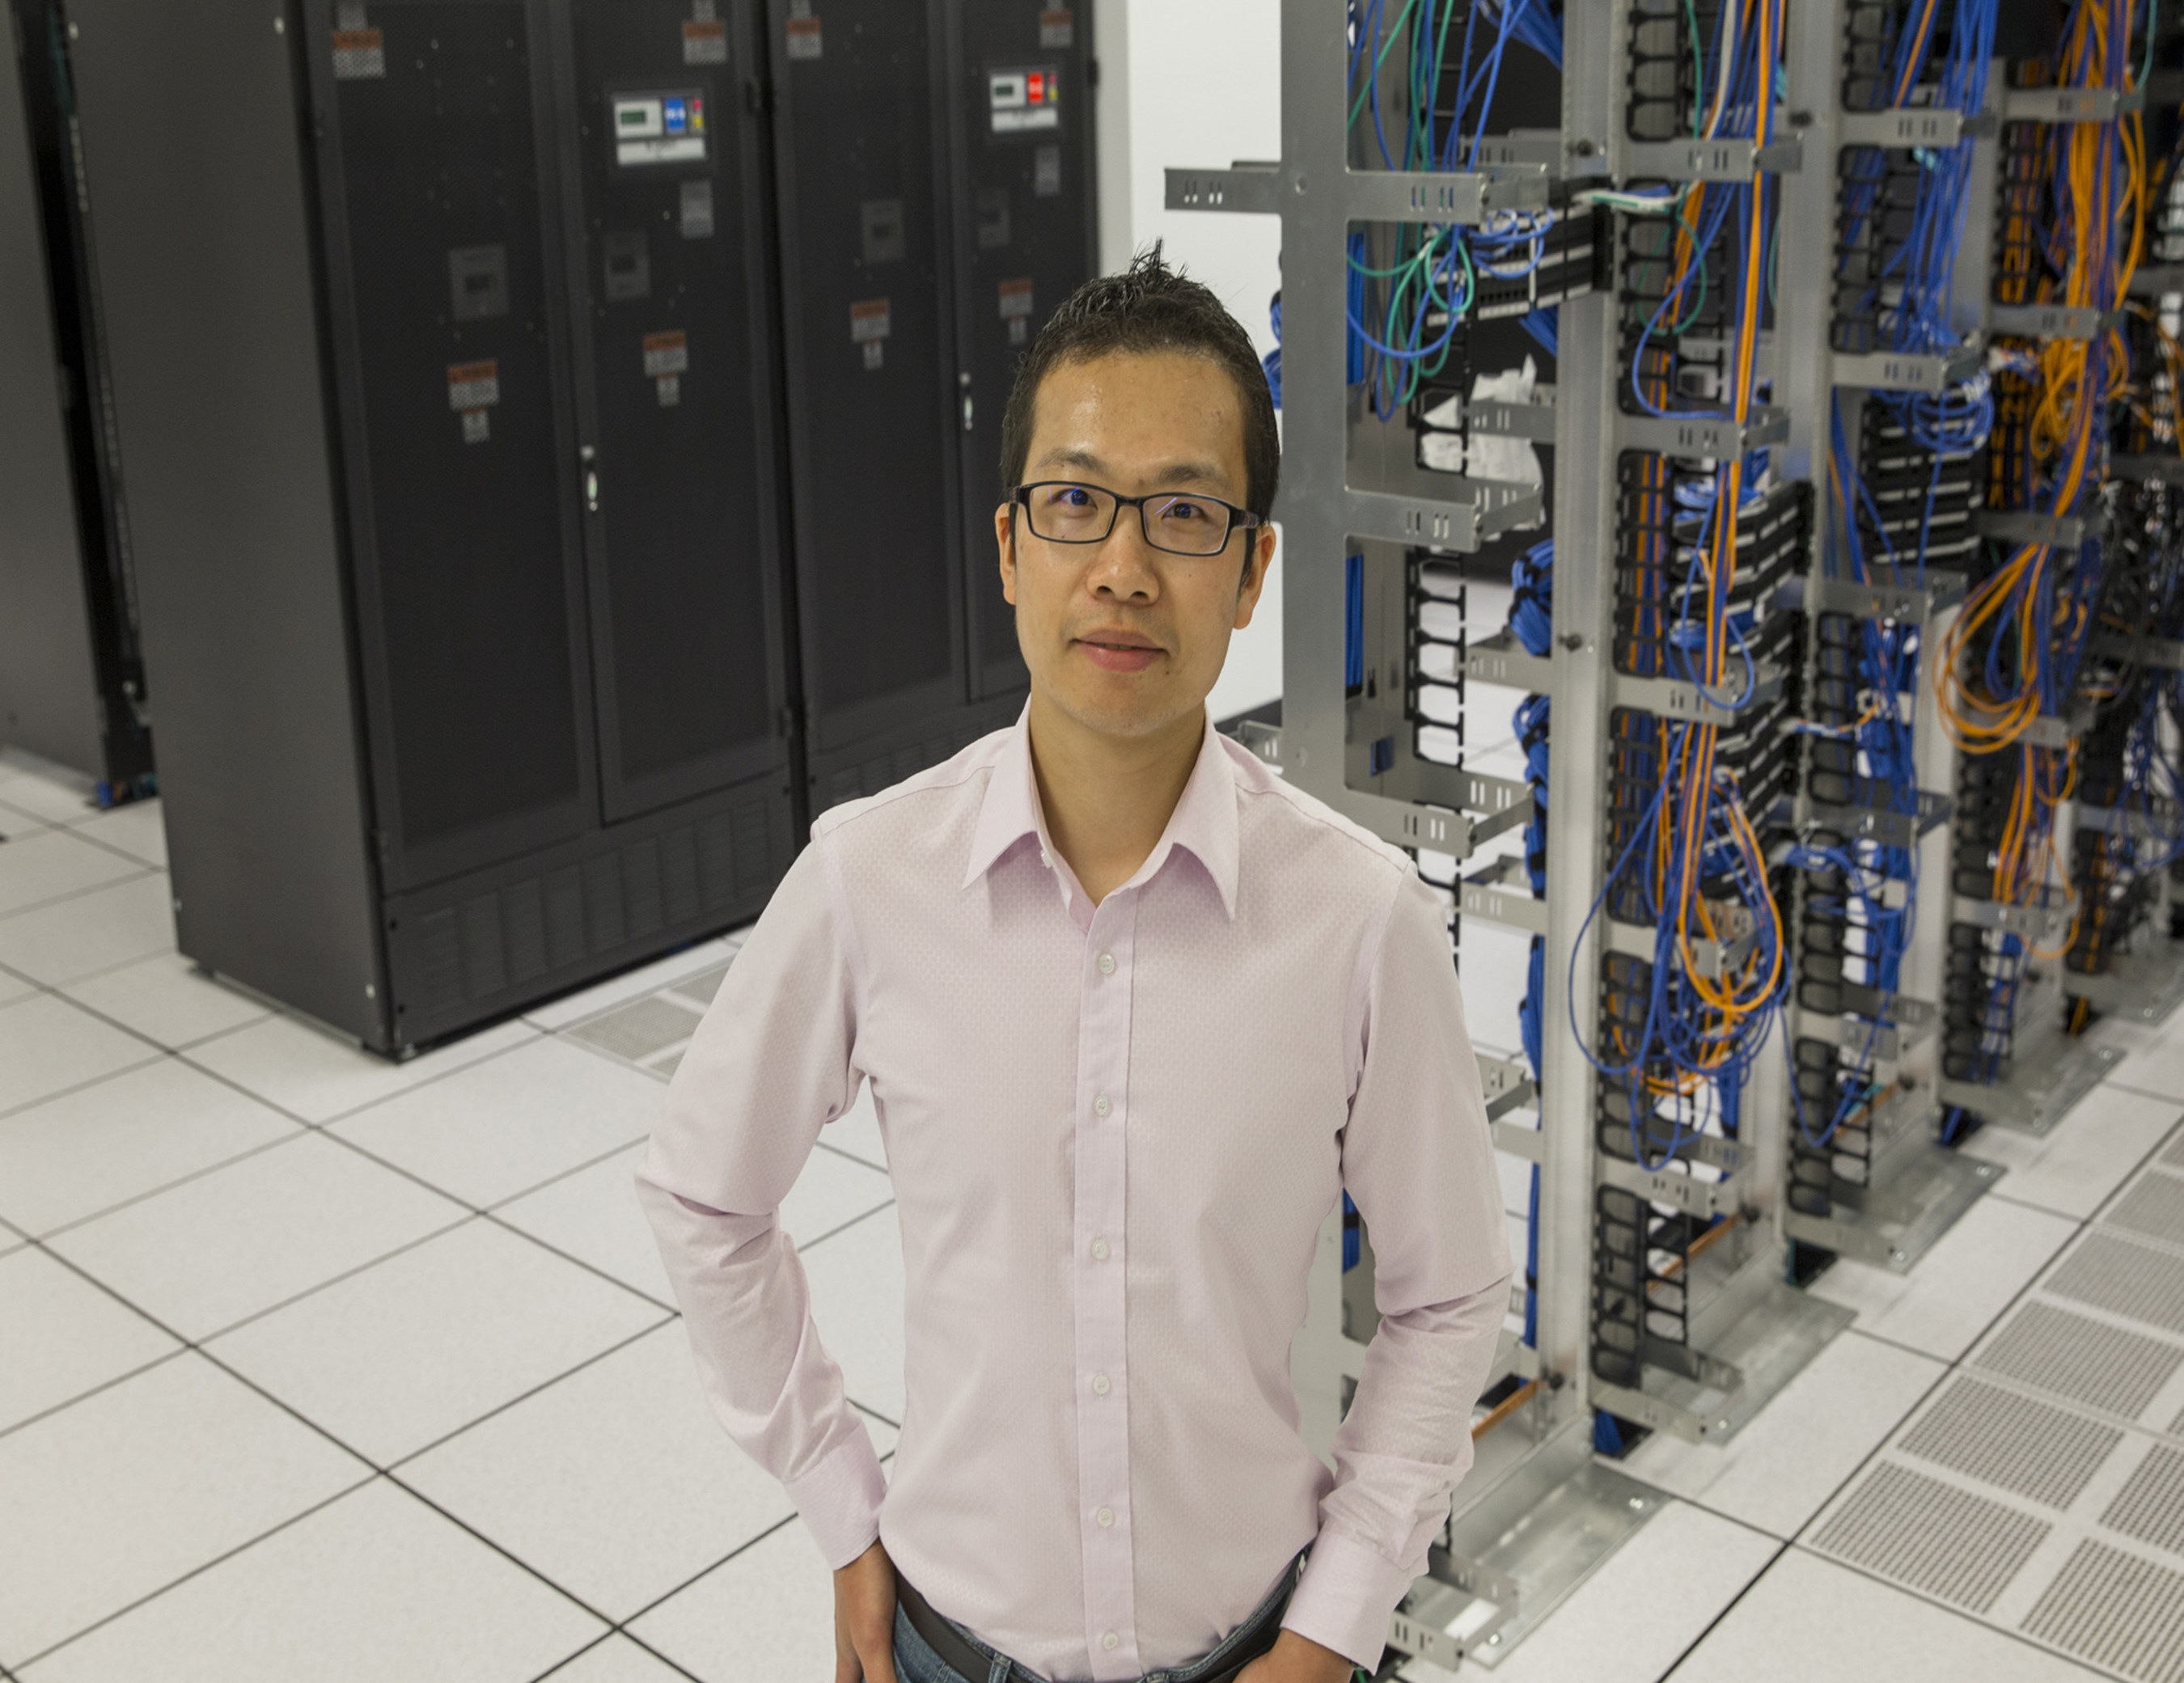 Yizhao Ni, PhD, a researcher in the Division of Biomedical Informatics at Cincinnati Children's Hospital Medical Center, stands in the institution's research data warehouse. Ni and his colleagues are mining electronic health record data and blending human and artificial intelligence to find better ways to recruit patients for clinical trials. They report research results on April 27 in the Journal of the American Medical Informatics Association.